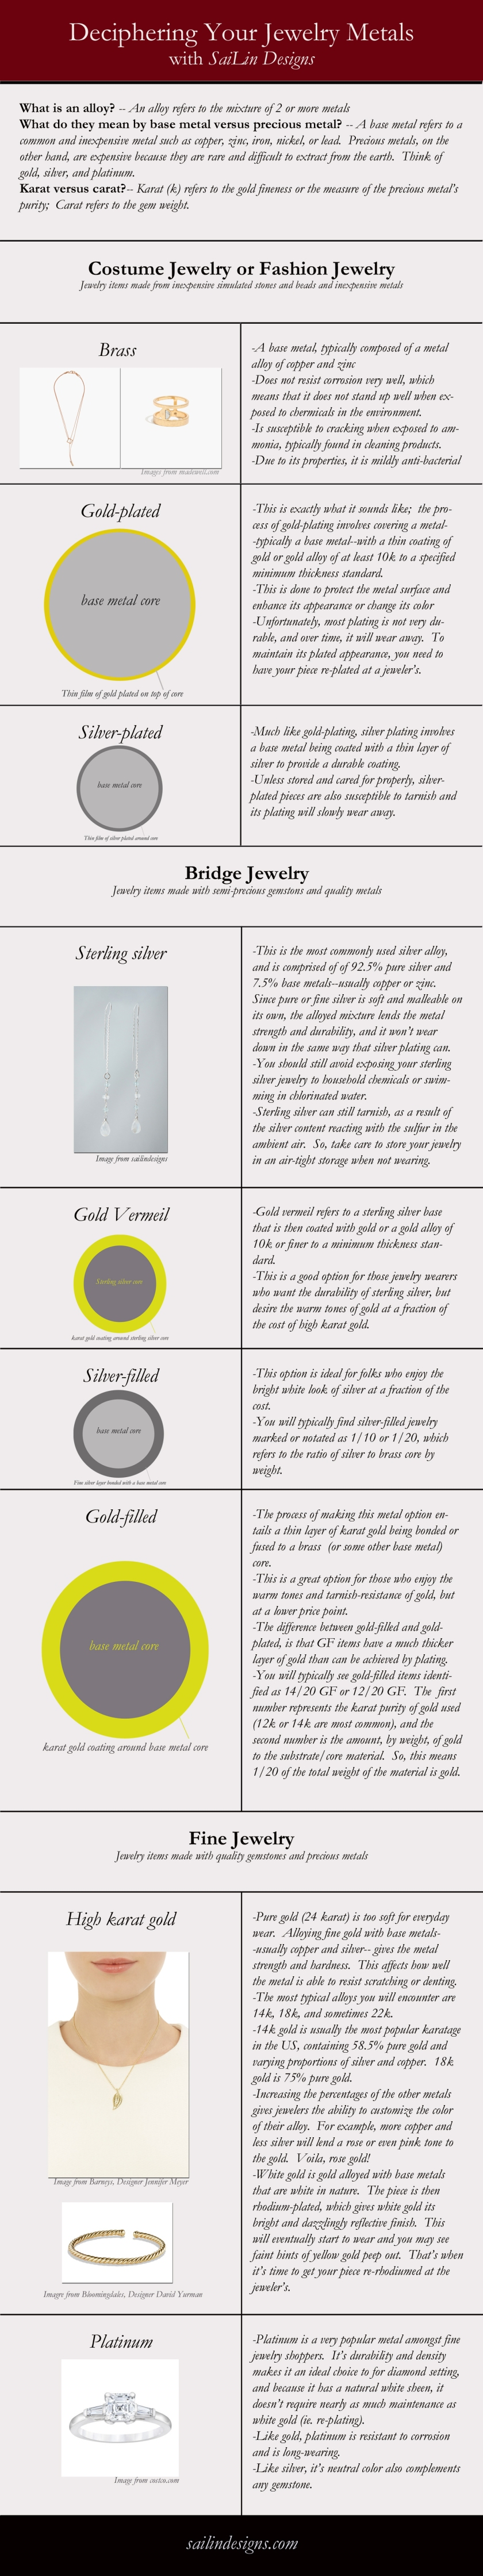 SaiLin Designs_Deciphering Your Jewelry Metals Guide